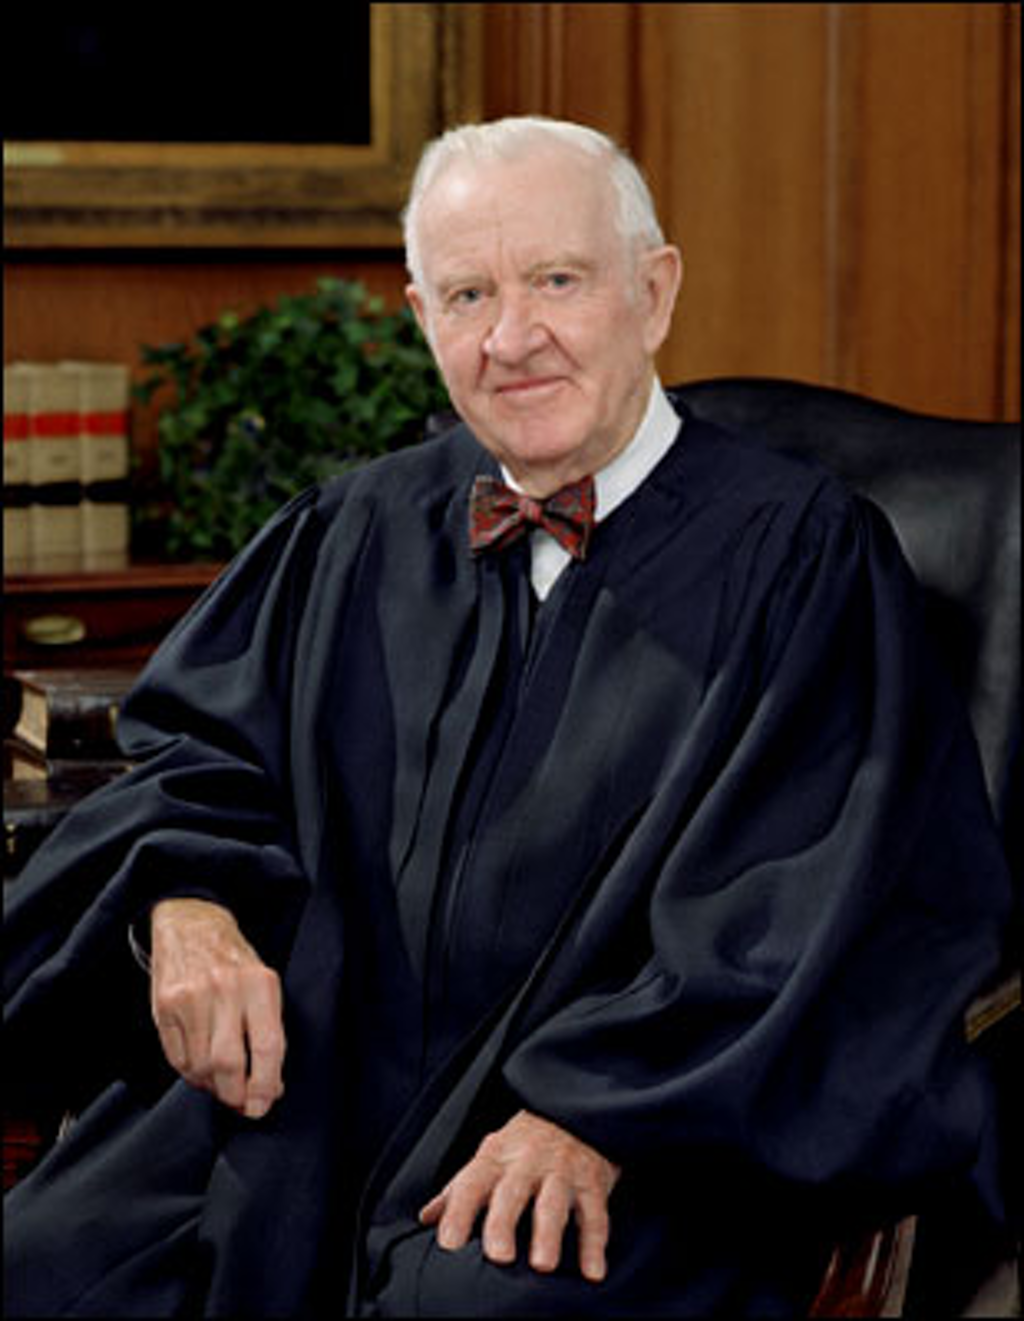 Justice John Paul Stevens's Death Penalty Jurisprudence